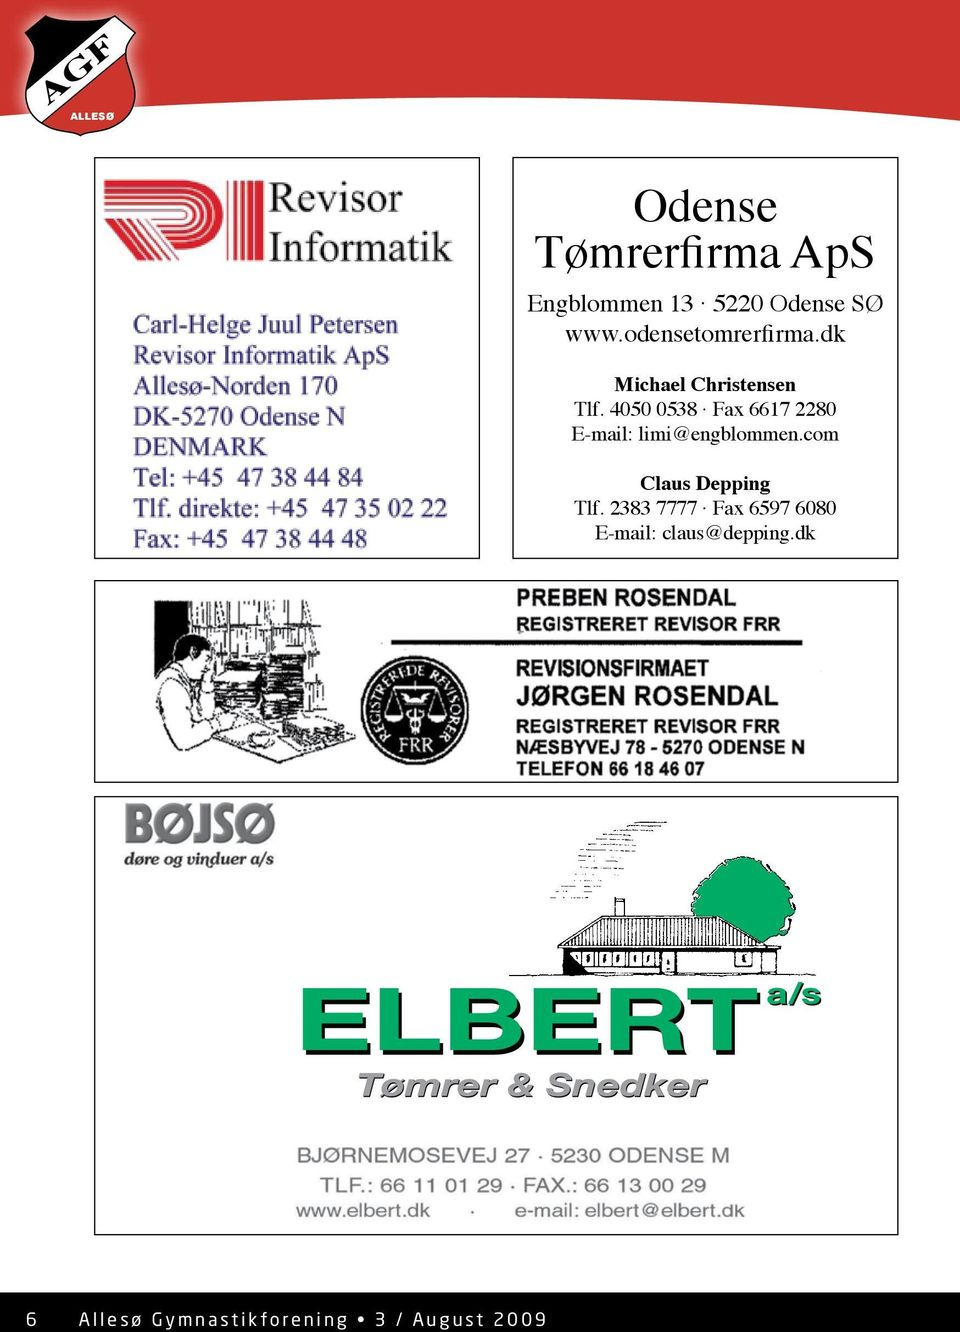 4050 0538 Fax 6617 2280 E-mail: limi@engblommen.com Claus Depping Tlf.